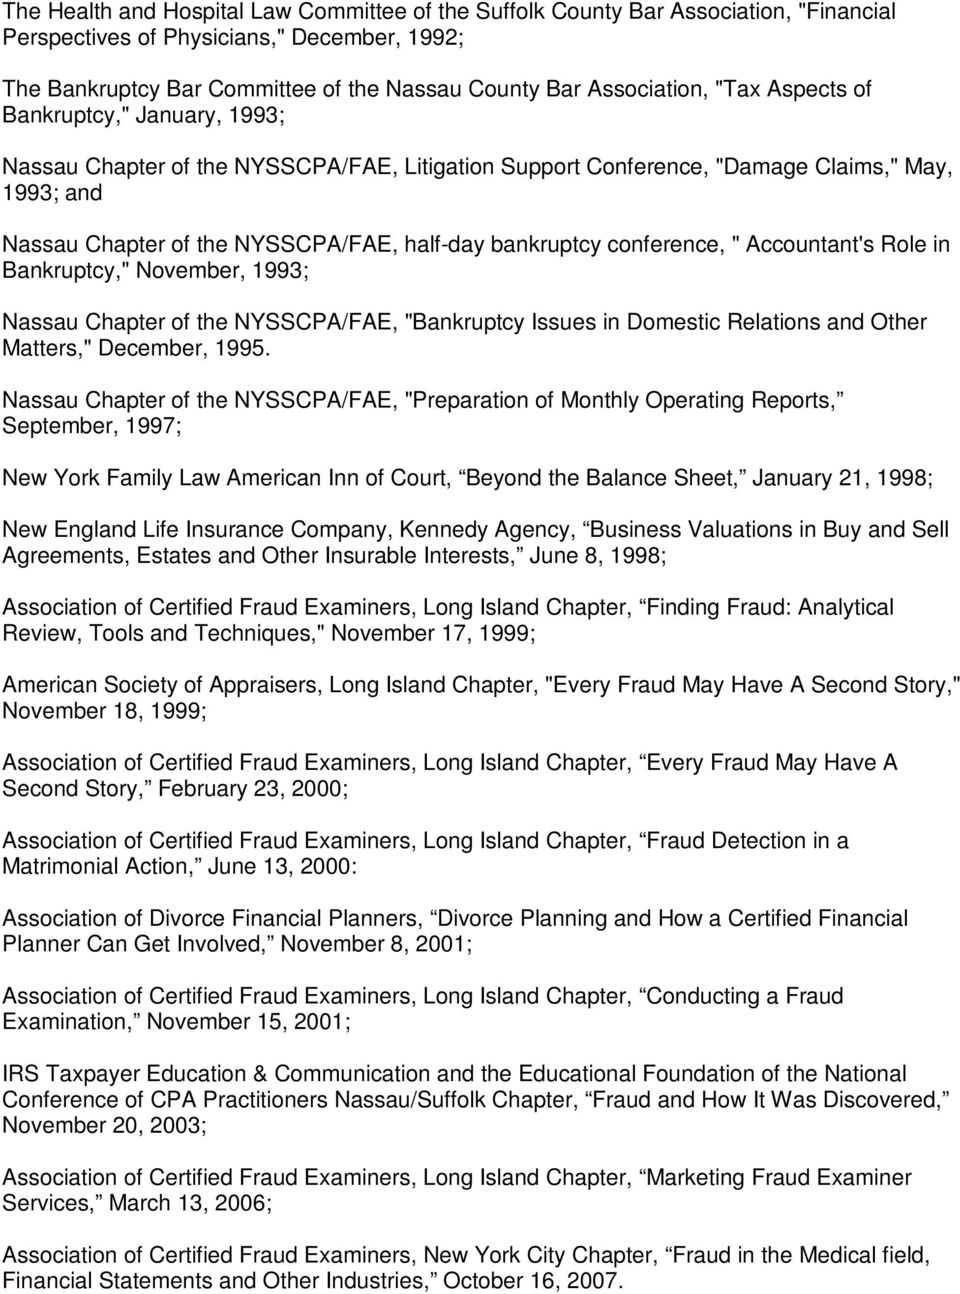 "conference, "" Accountant's Role in Bankruptcy,"" November, 1993; Nassau Chapter of the NYSSCPA/FAE, ""Bankruptcy Issues in Domestic Relations and Other Matters,"" December, 1995."